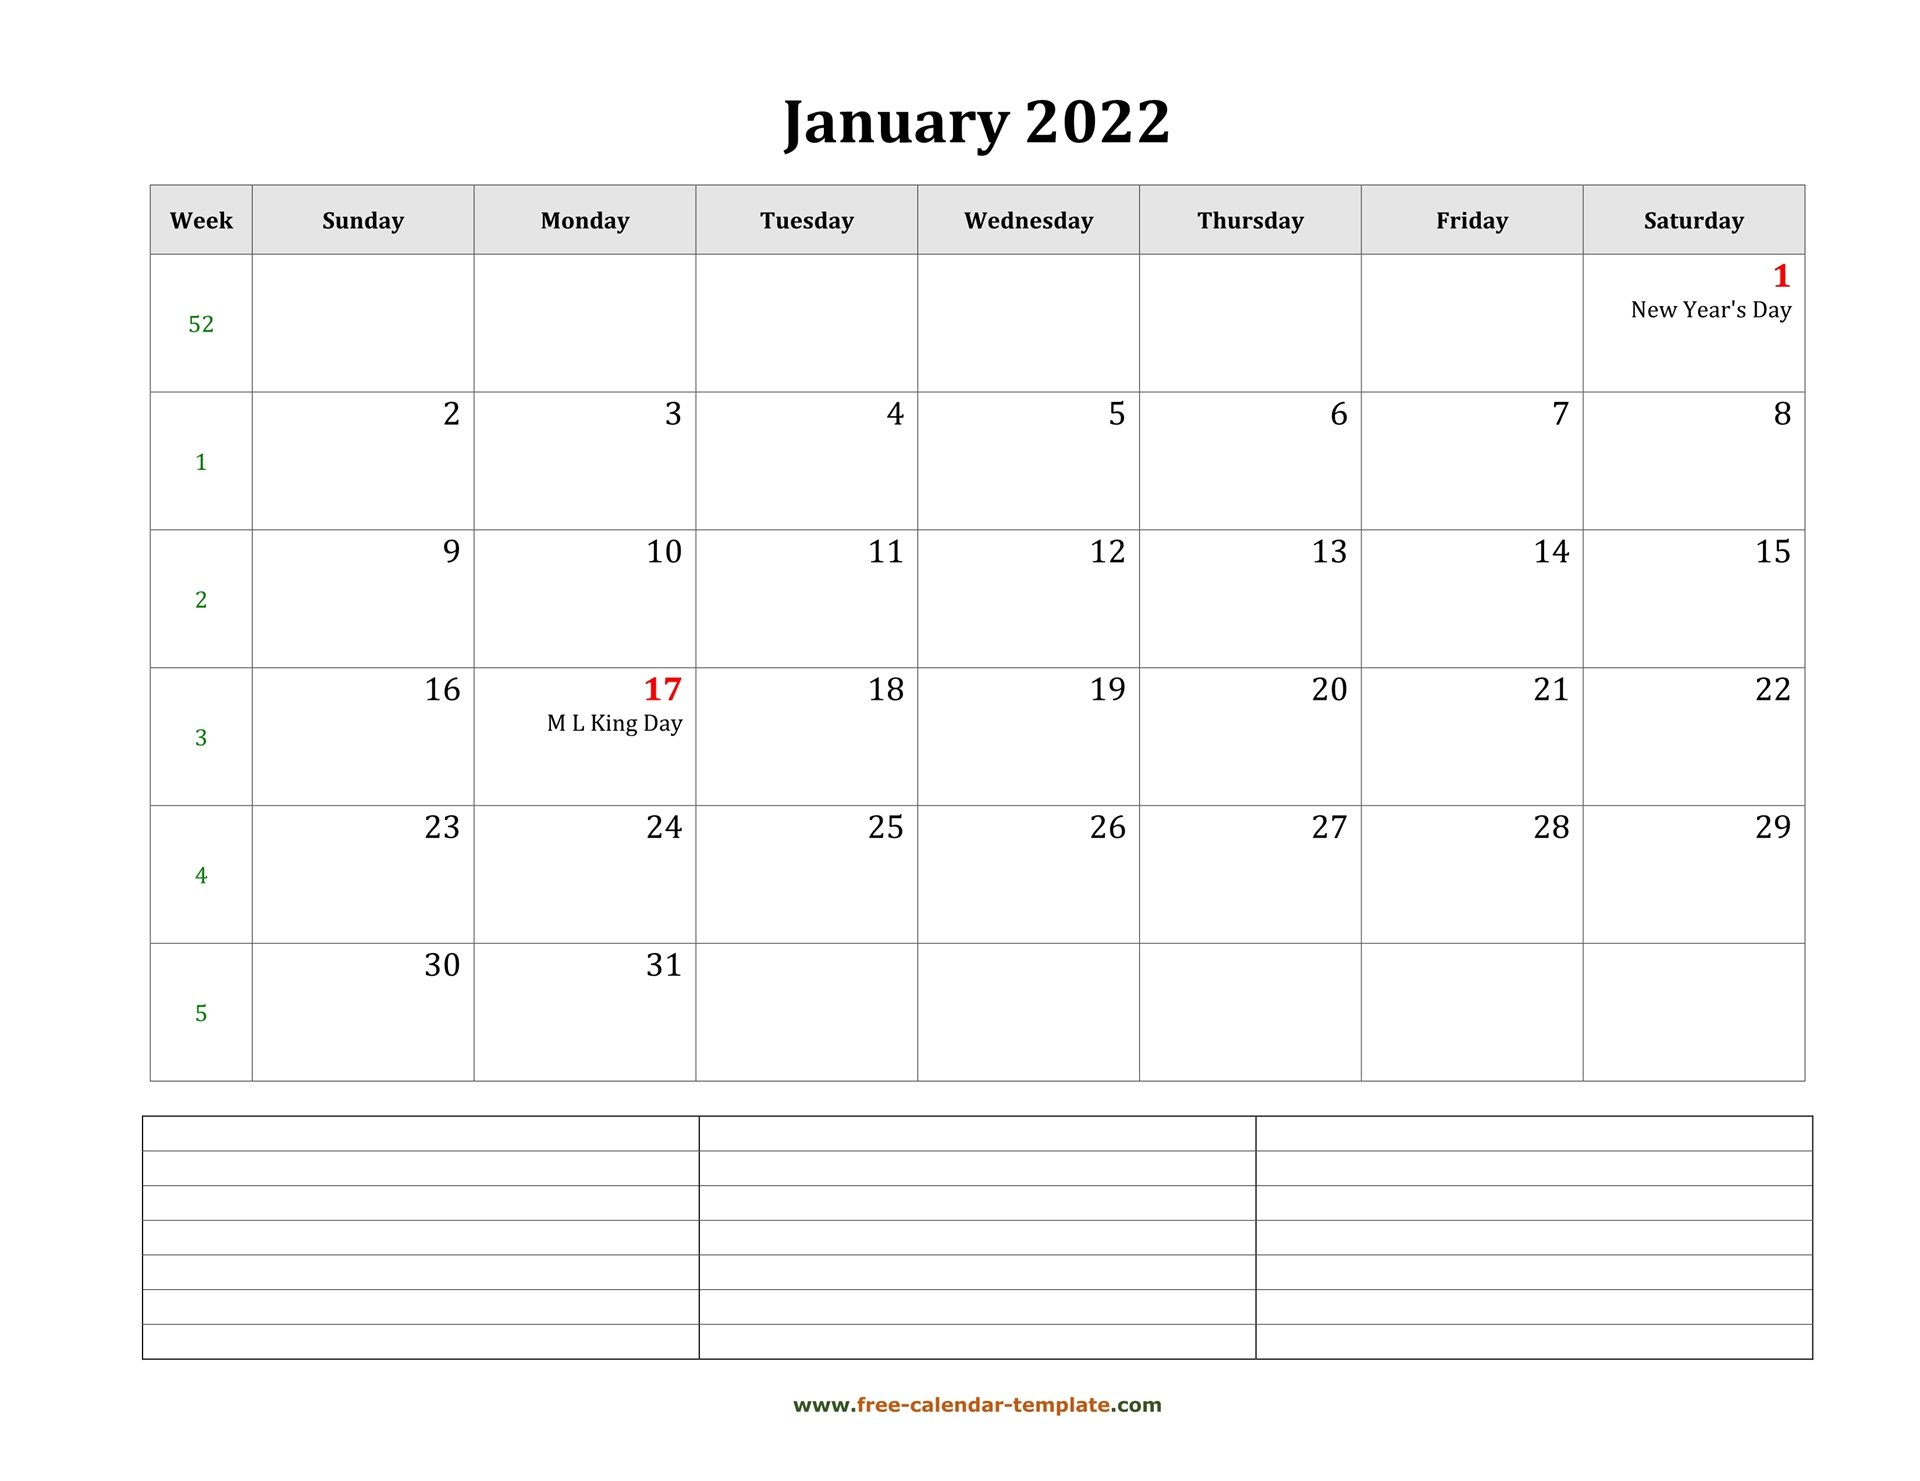 2022 Printable January Calendar With Space For intended for Free Printable January Calendar 2022 Photo